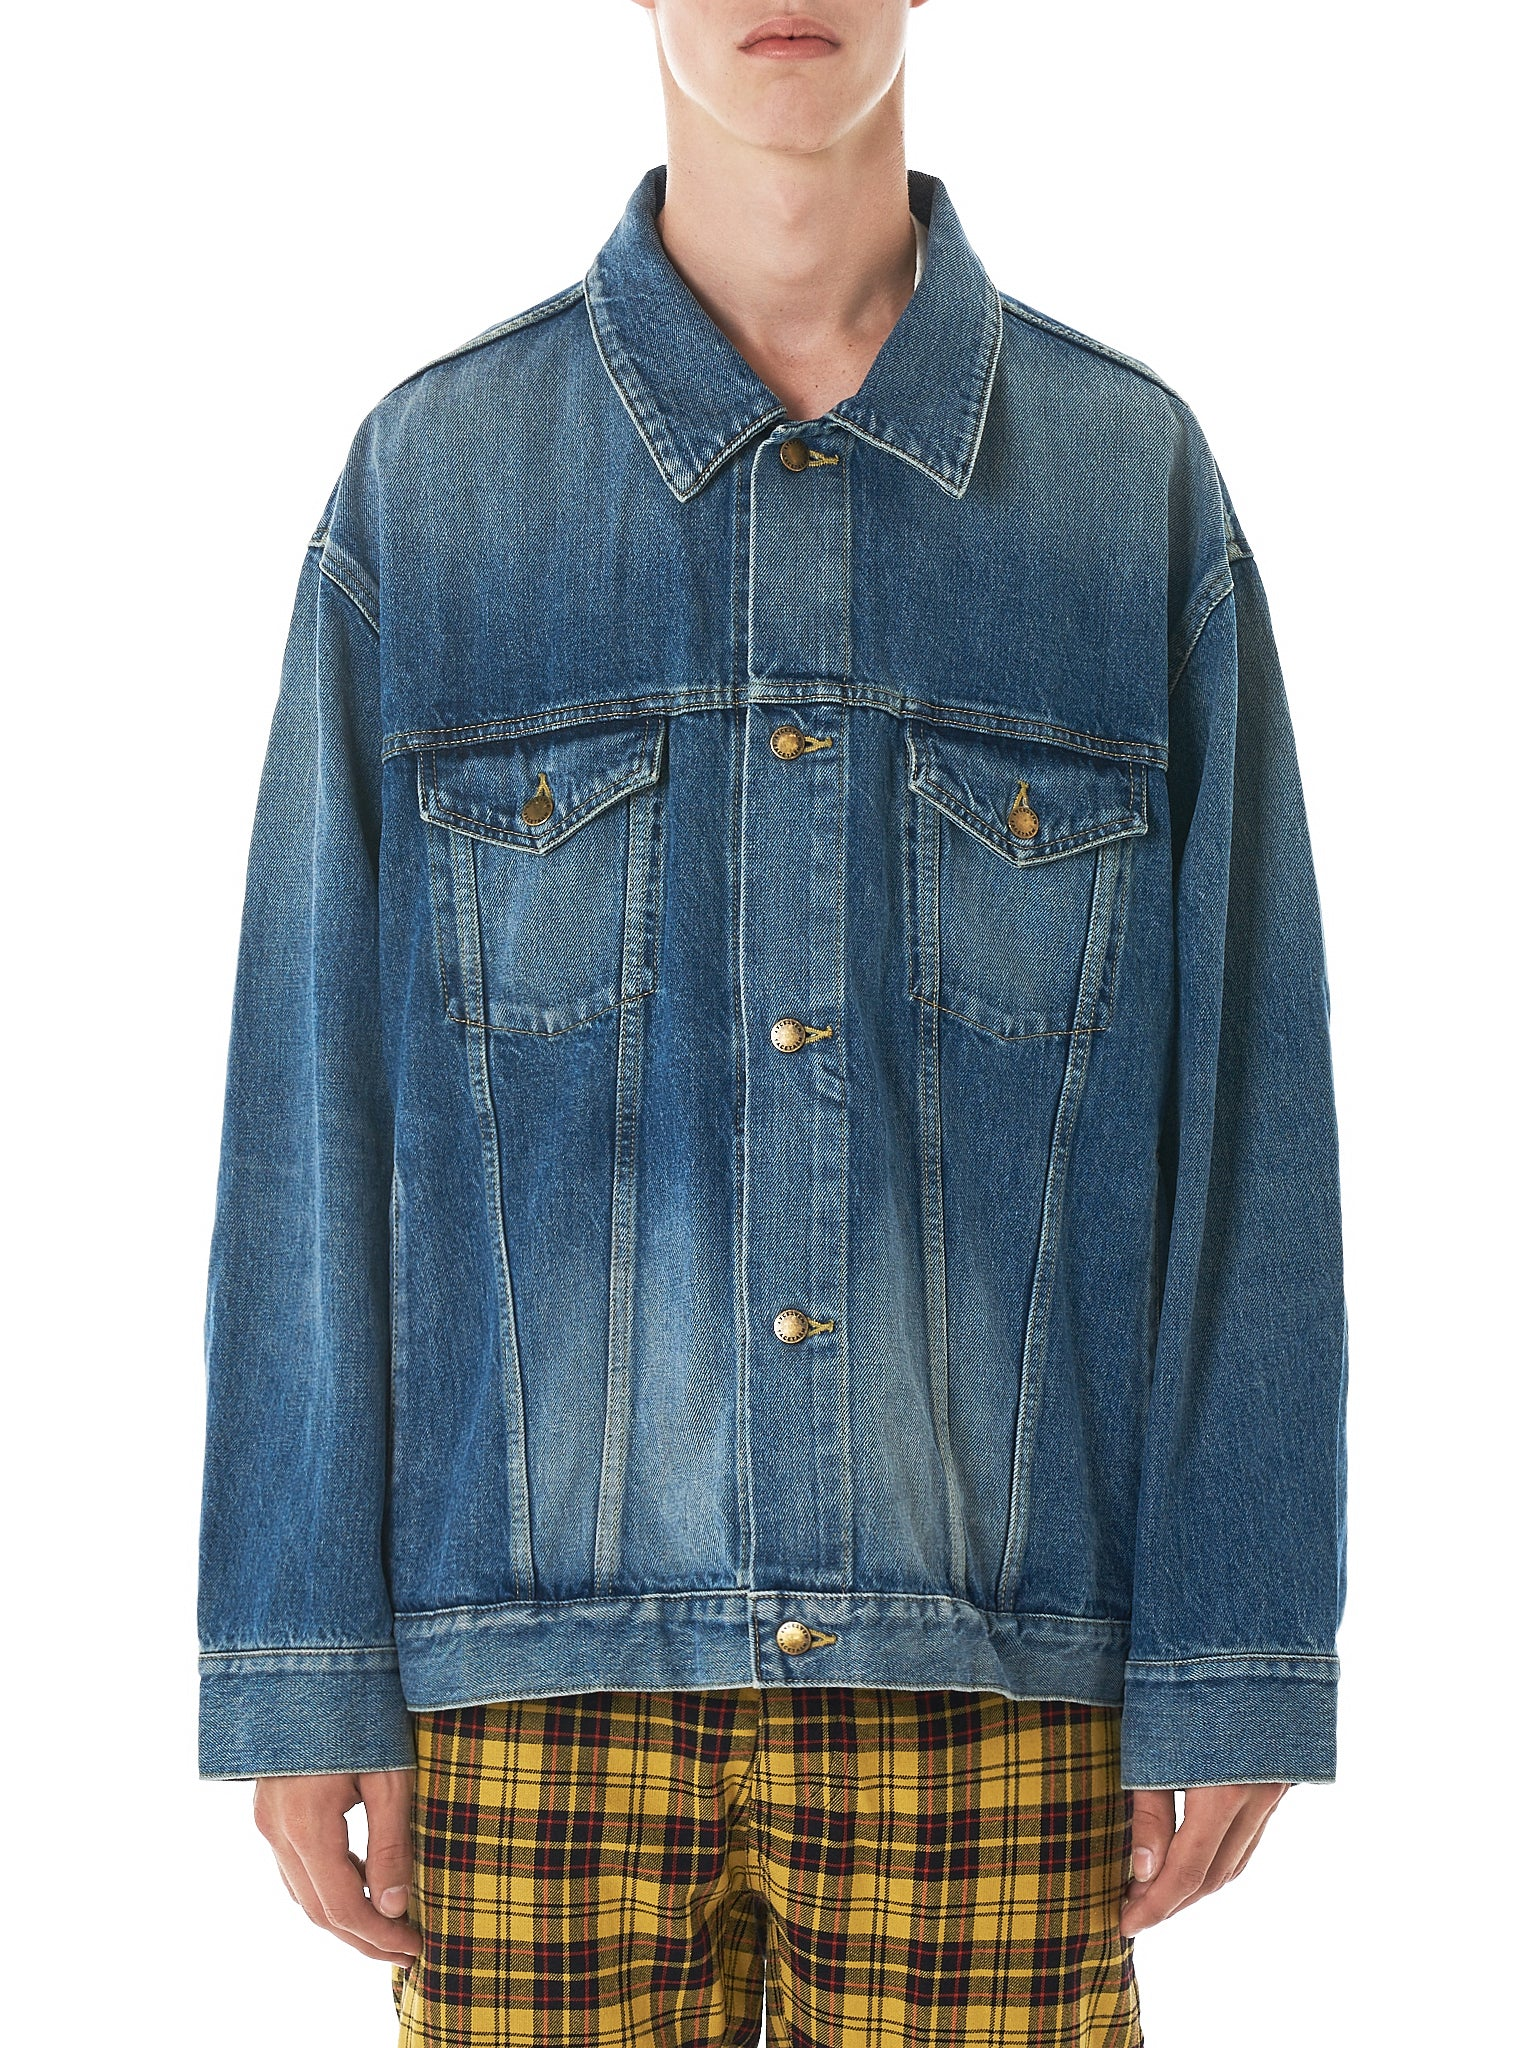 Rib Panel Denim Jacket (JKU02-WAIN)